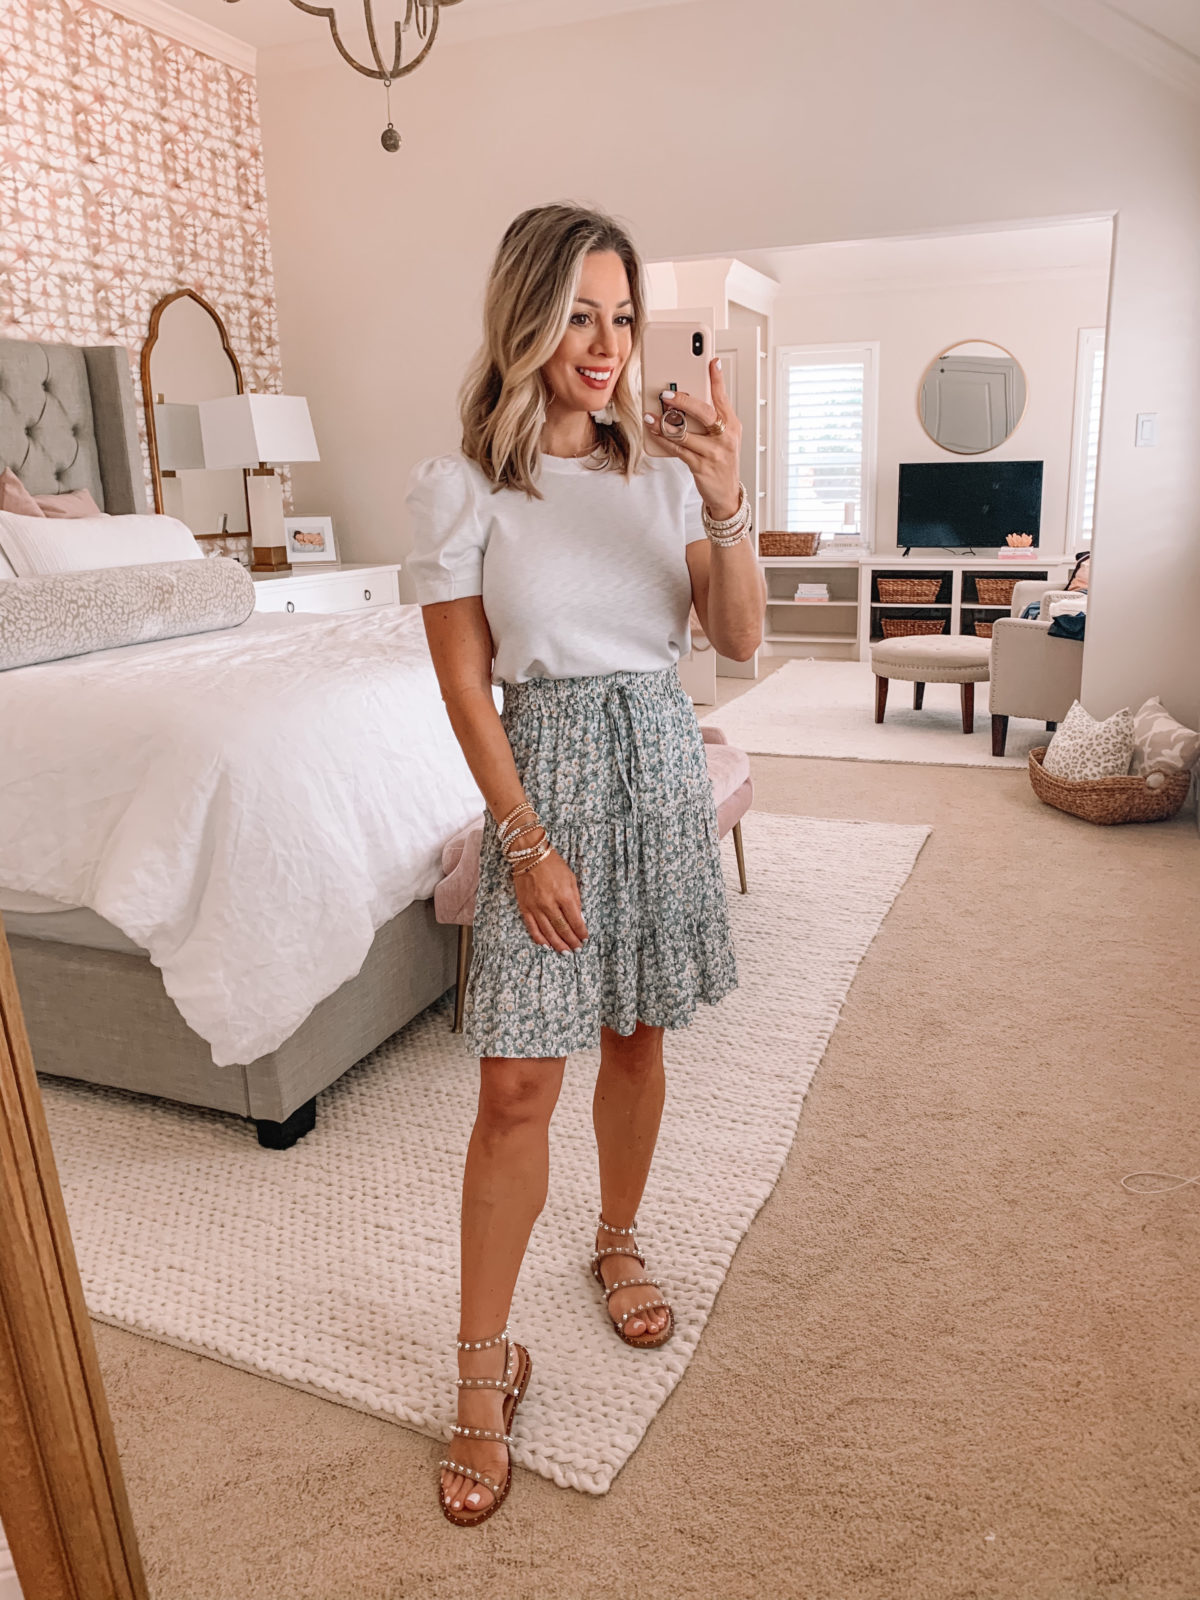 Amazon Fashion Finds, White Puff Sleeve Top, Floral Skirt, Studded Sandals